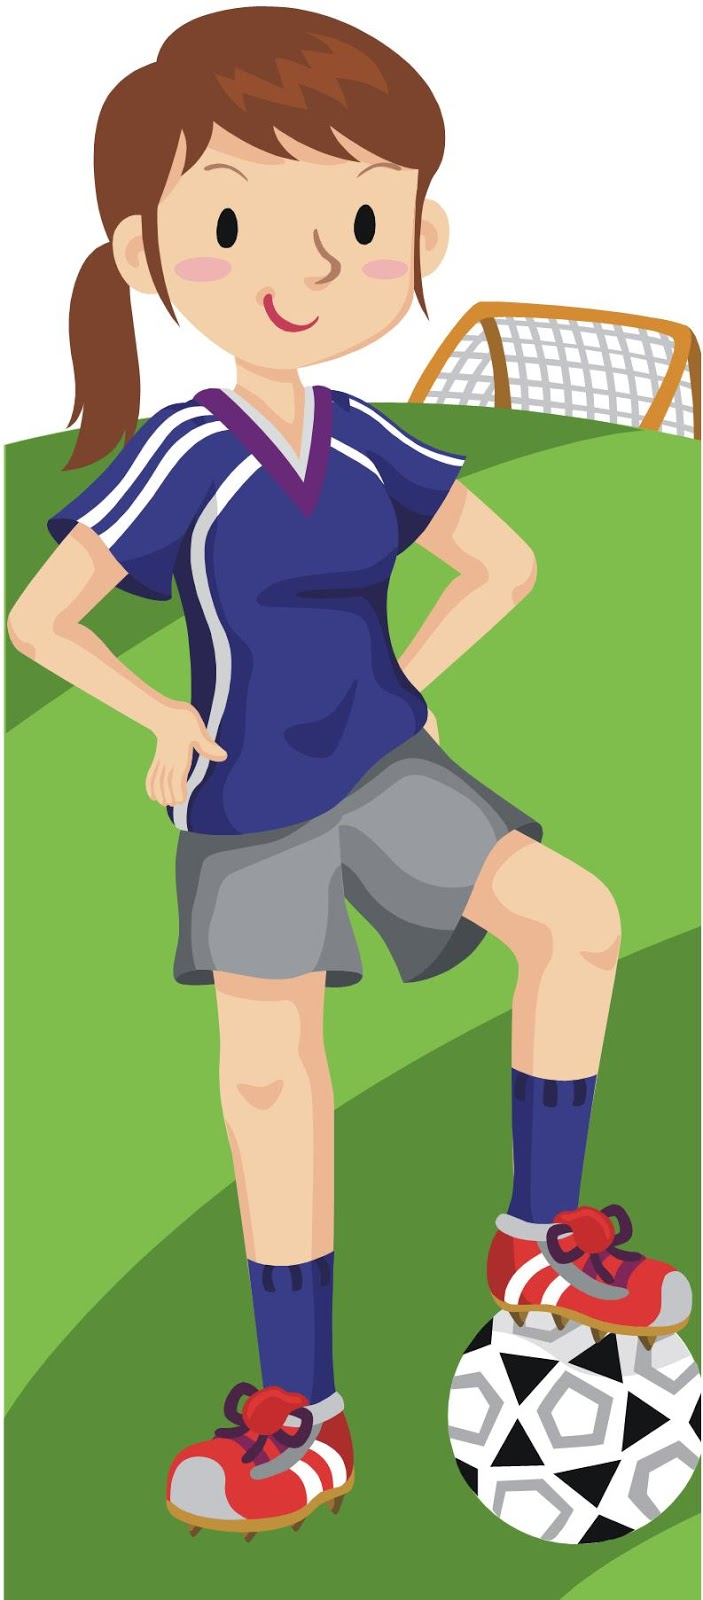 Club clipart middle school Category: soccer clipart Images Art